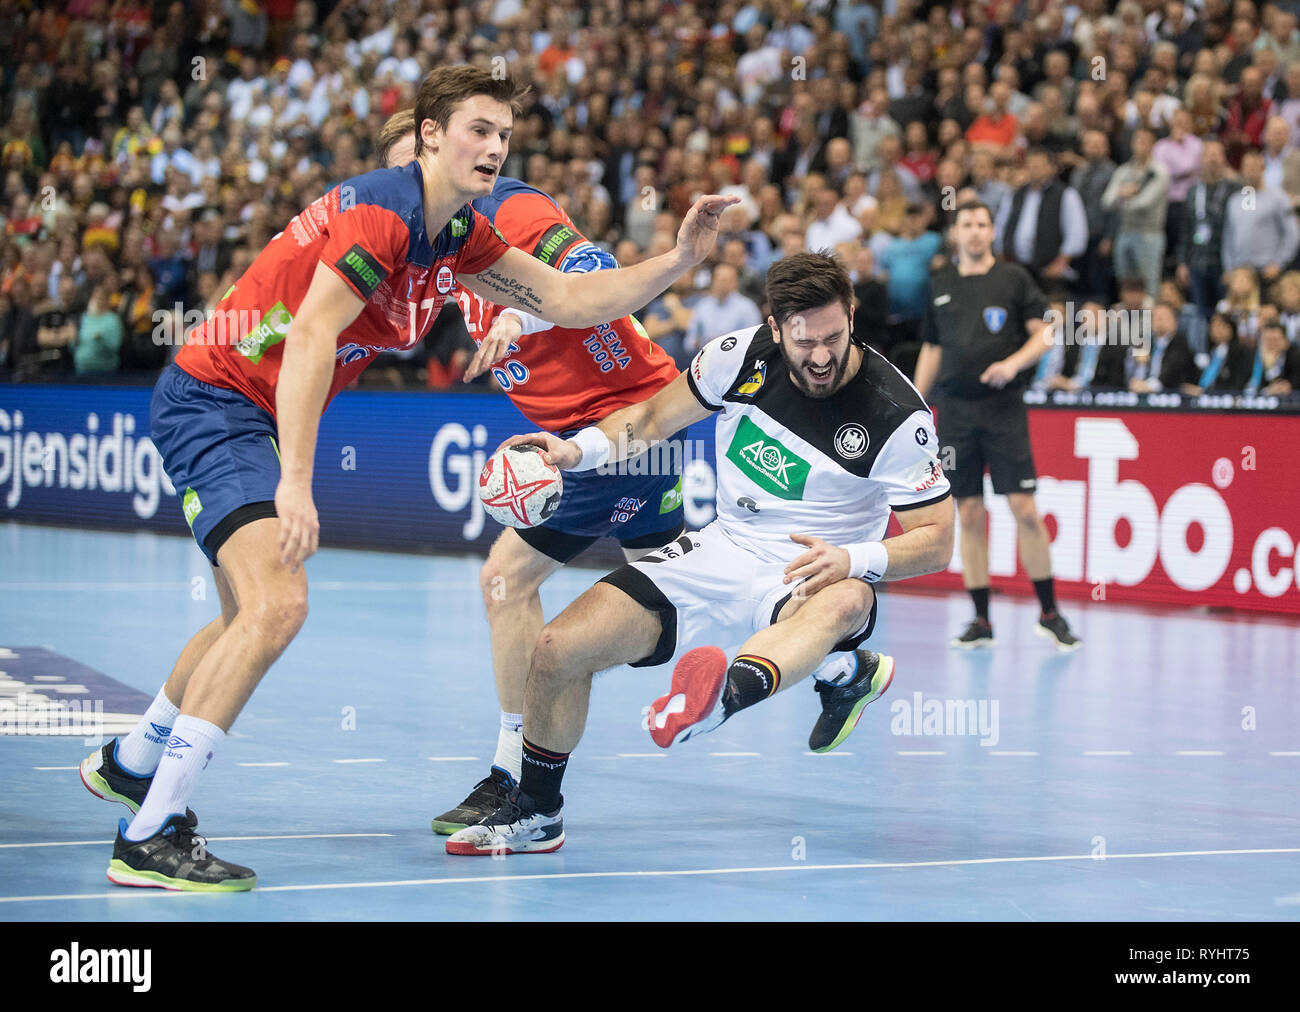 Hamburg, Deutschland. 25th Jan, 2019. Tim Suton r. (GER) in duels versus Magnus ROD (NOR), Action, Semifinals Germany (GER) - Norway (NOR) 25 - 31, on 25.01.2019 in Hamburg/Germany. Handball World Cup 2019, from 10.01. - 27.01.2019 in Germany/Denmark.   usage worldwide Credit: dpa/Alamy Live News Stock Photo